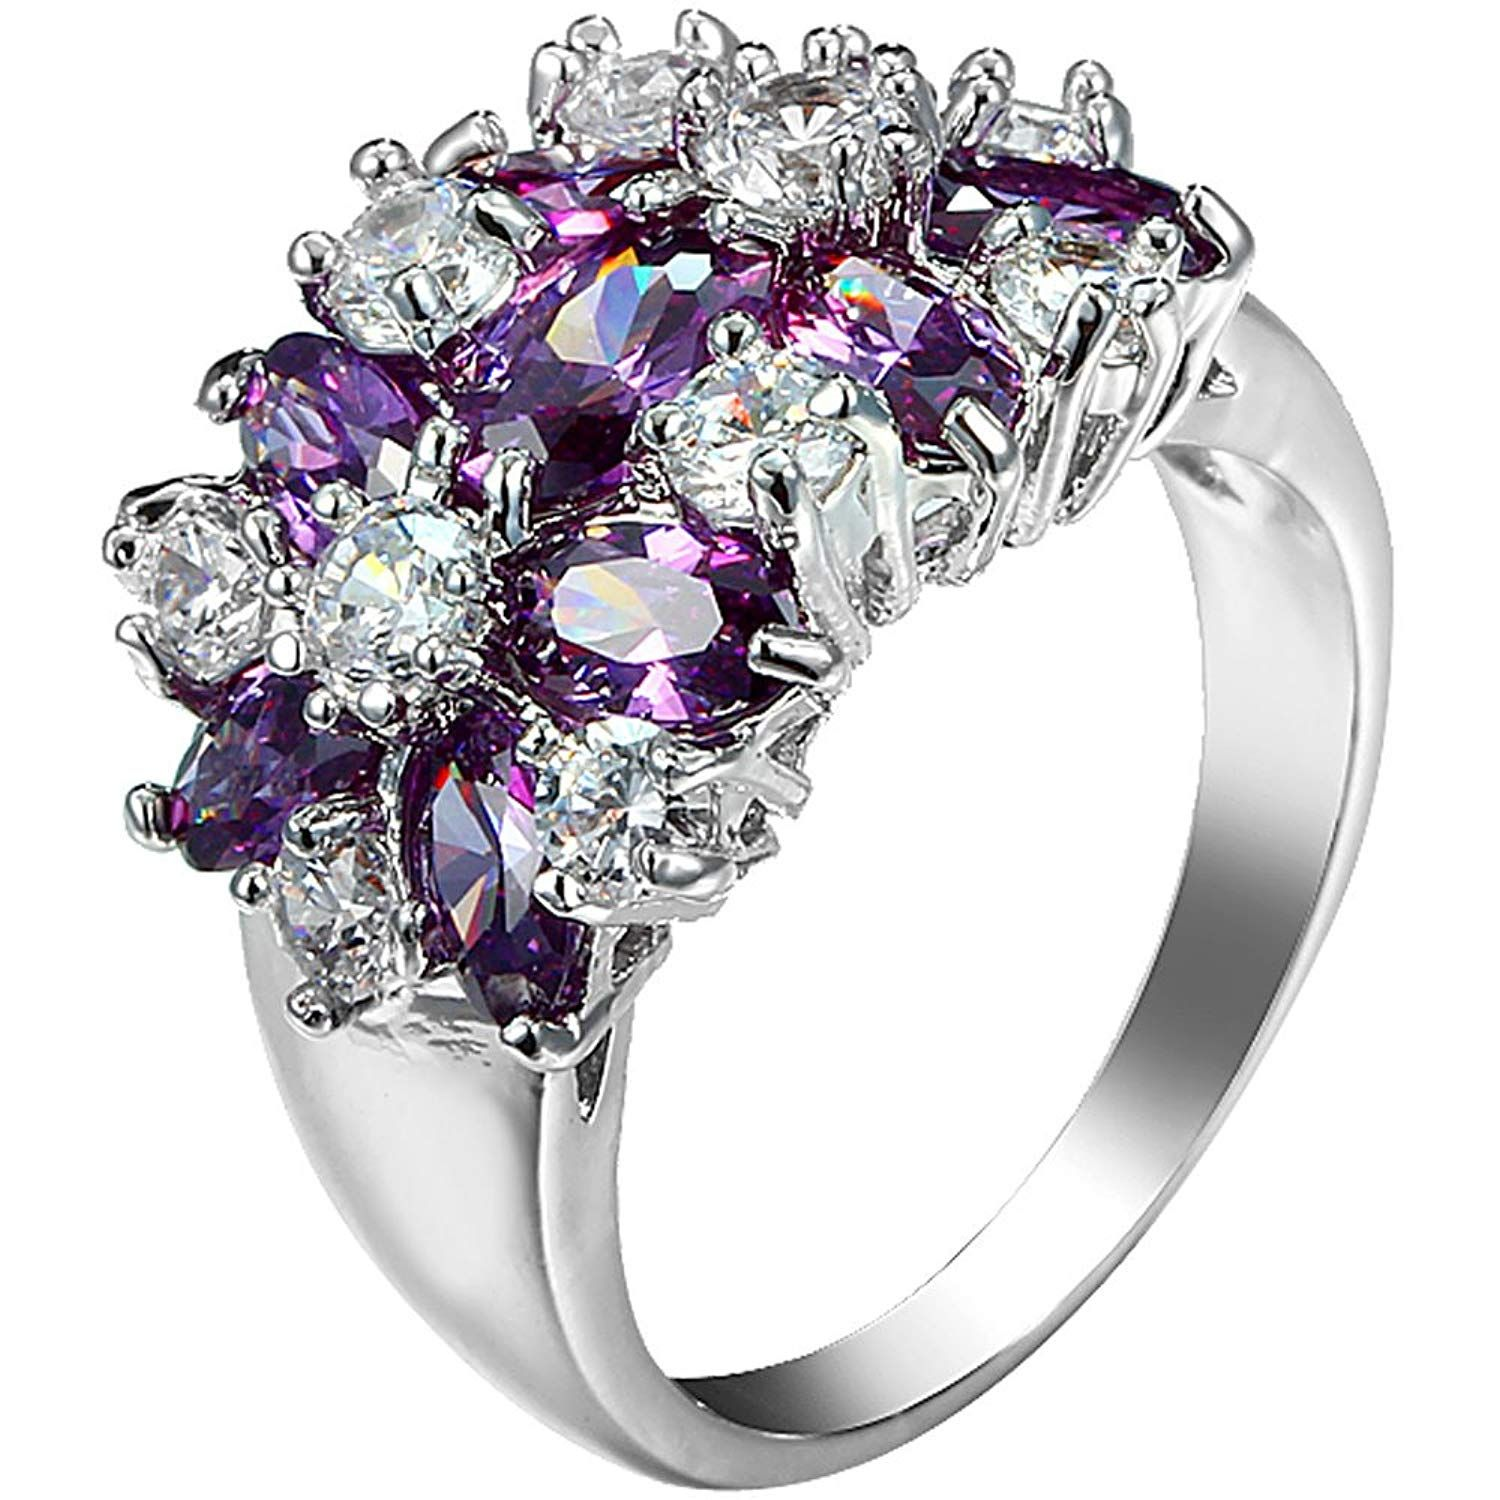 XAHH Womens 925 Sterling Silver Plated Purple Cubic